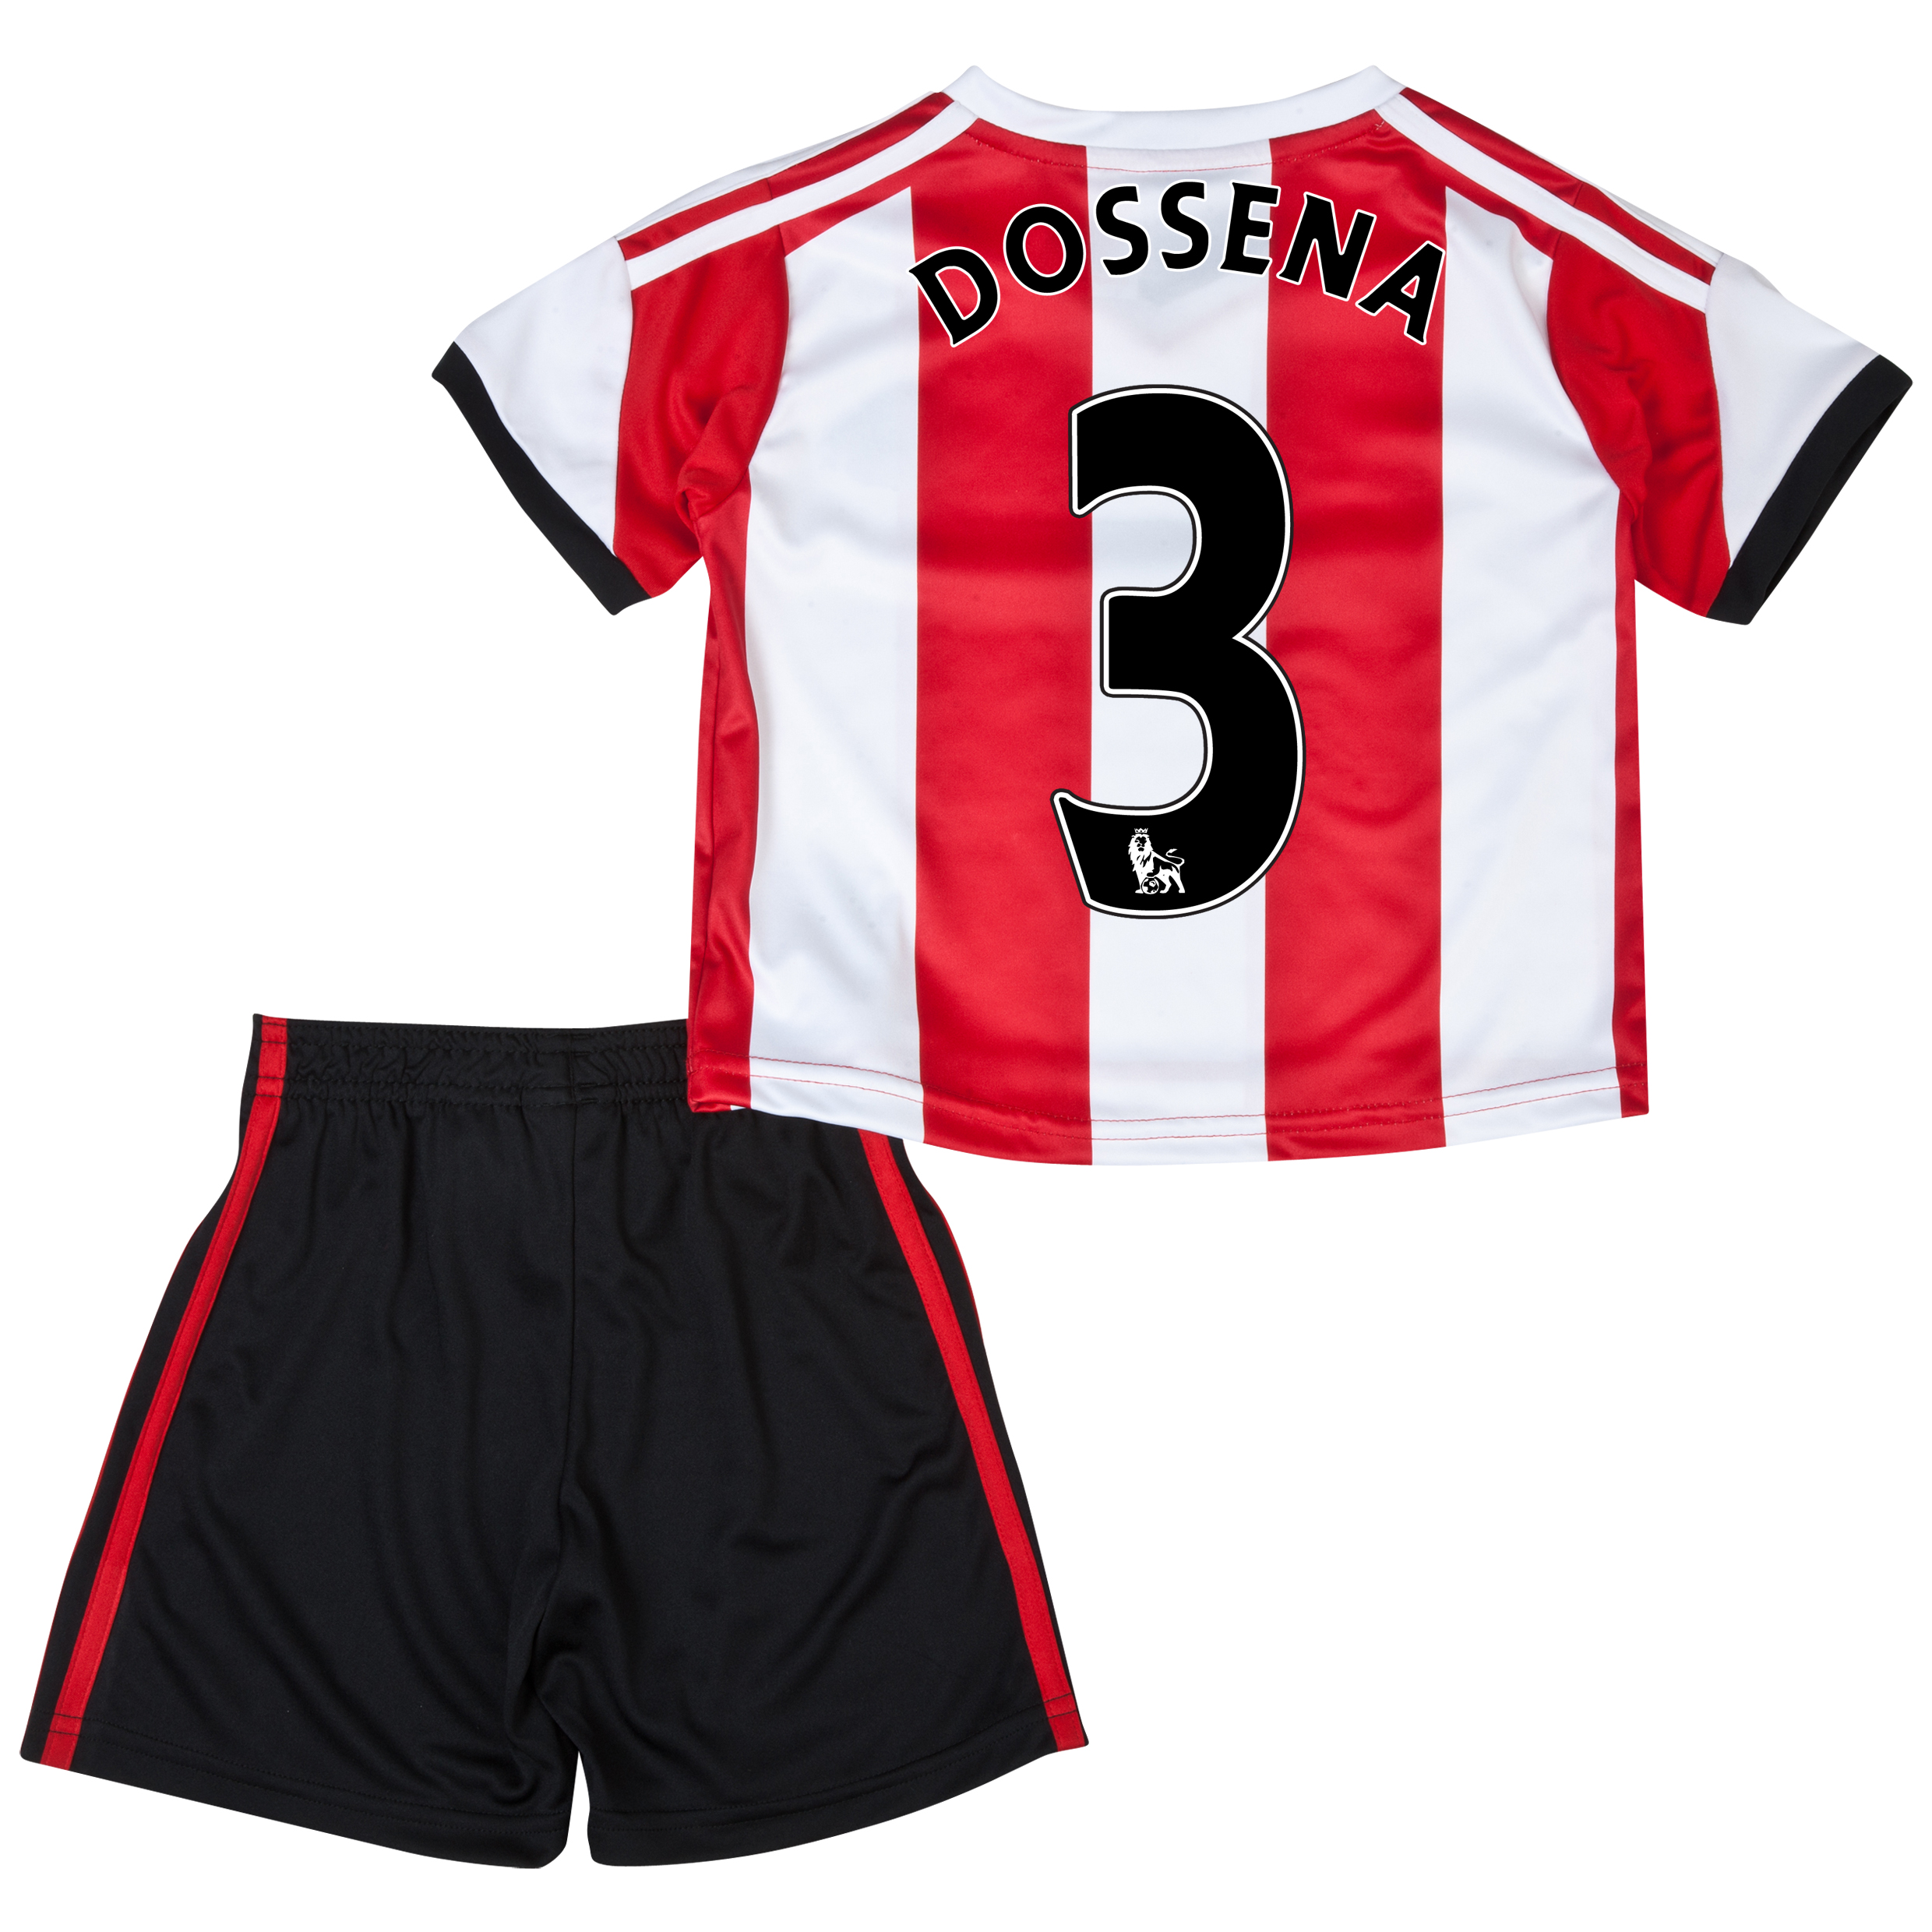 Sunderland Home Minikit 2013/14 - Infants with Dossena 3 printing